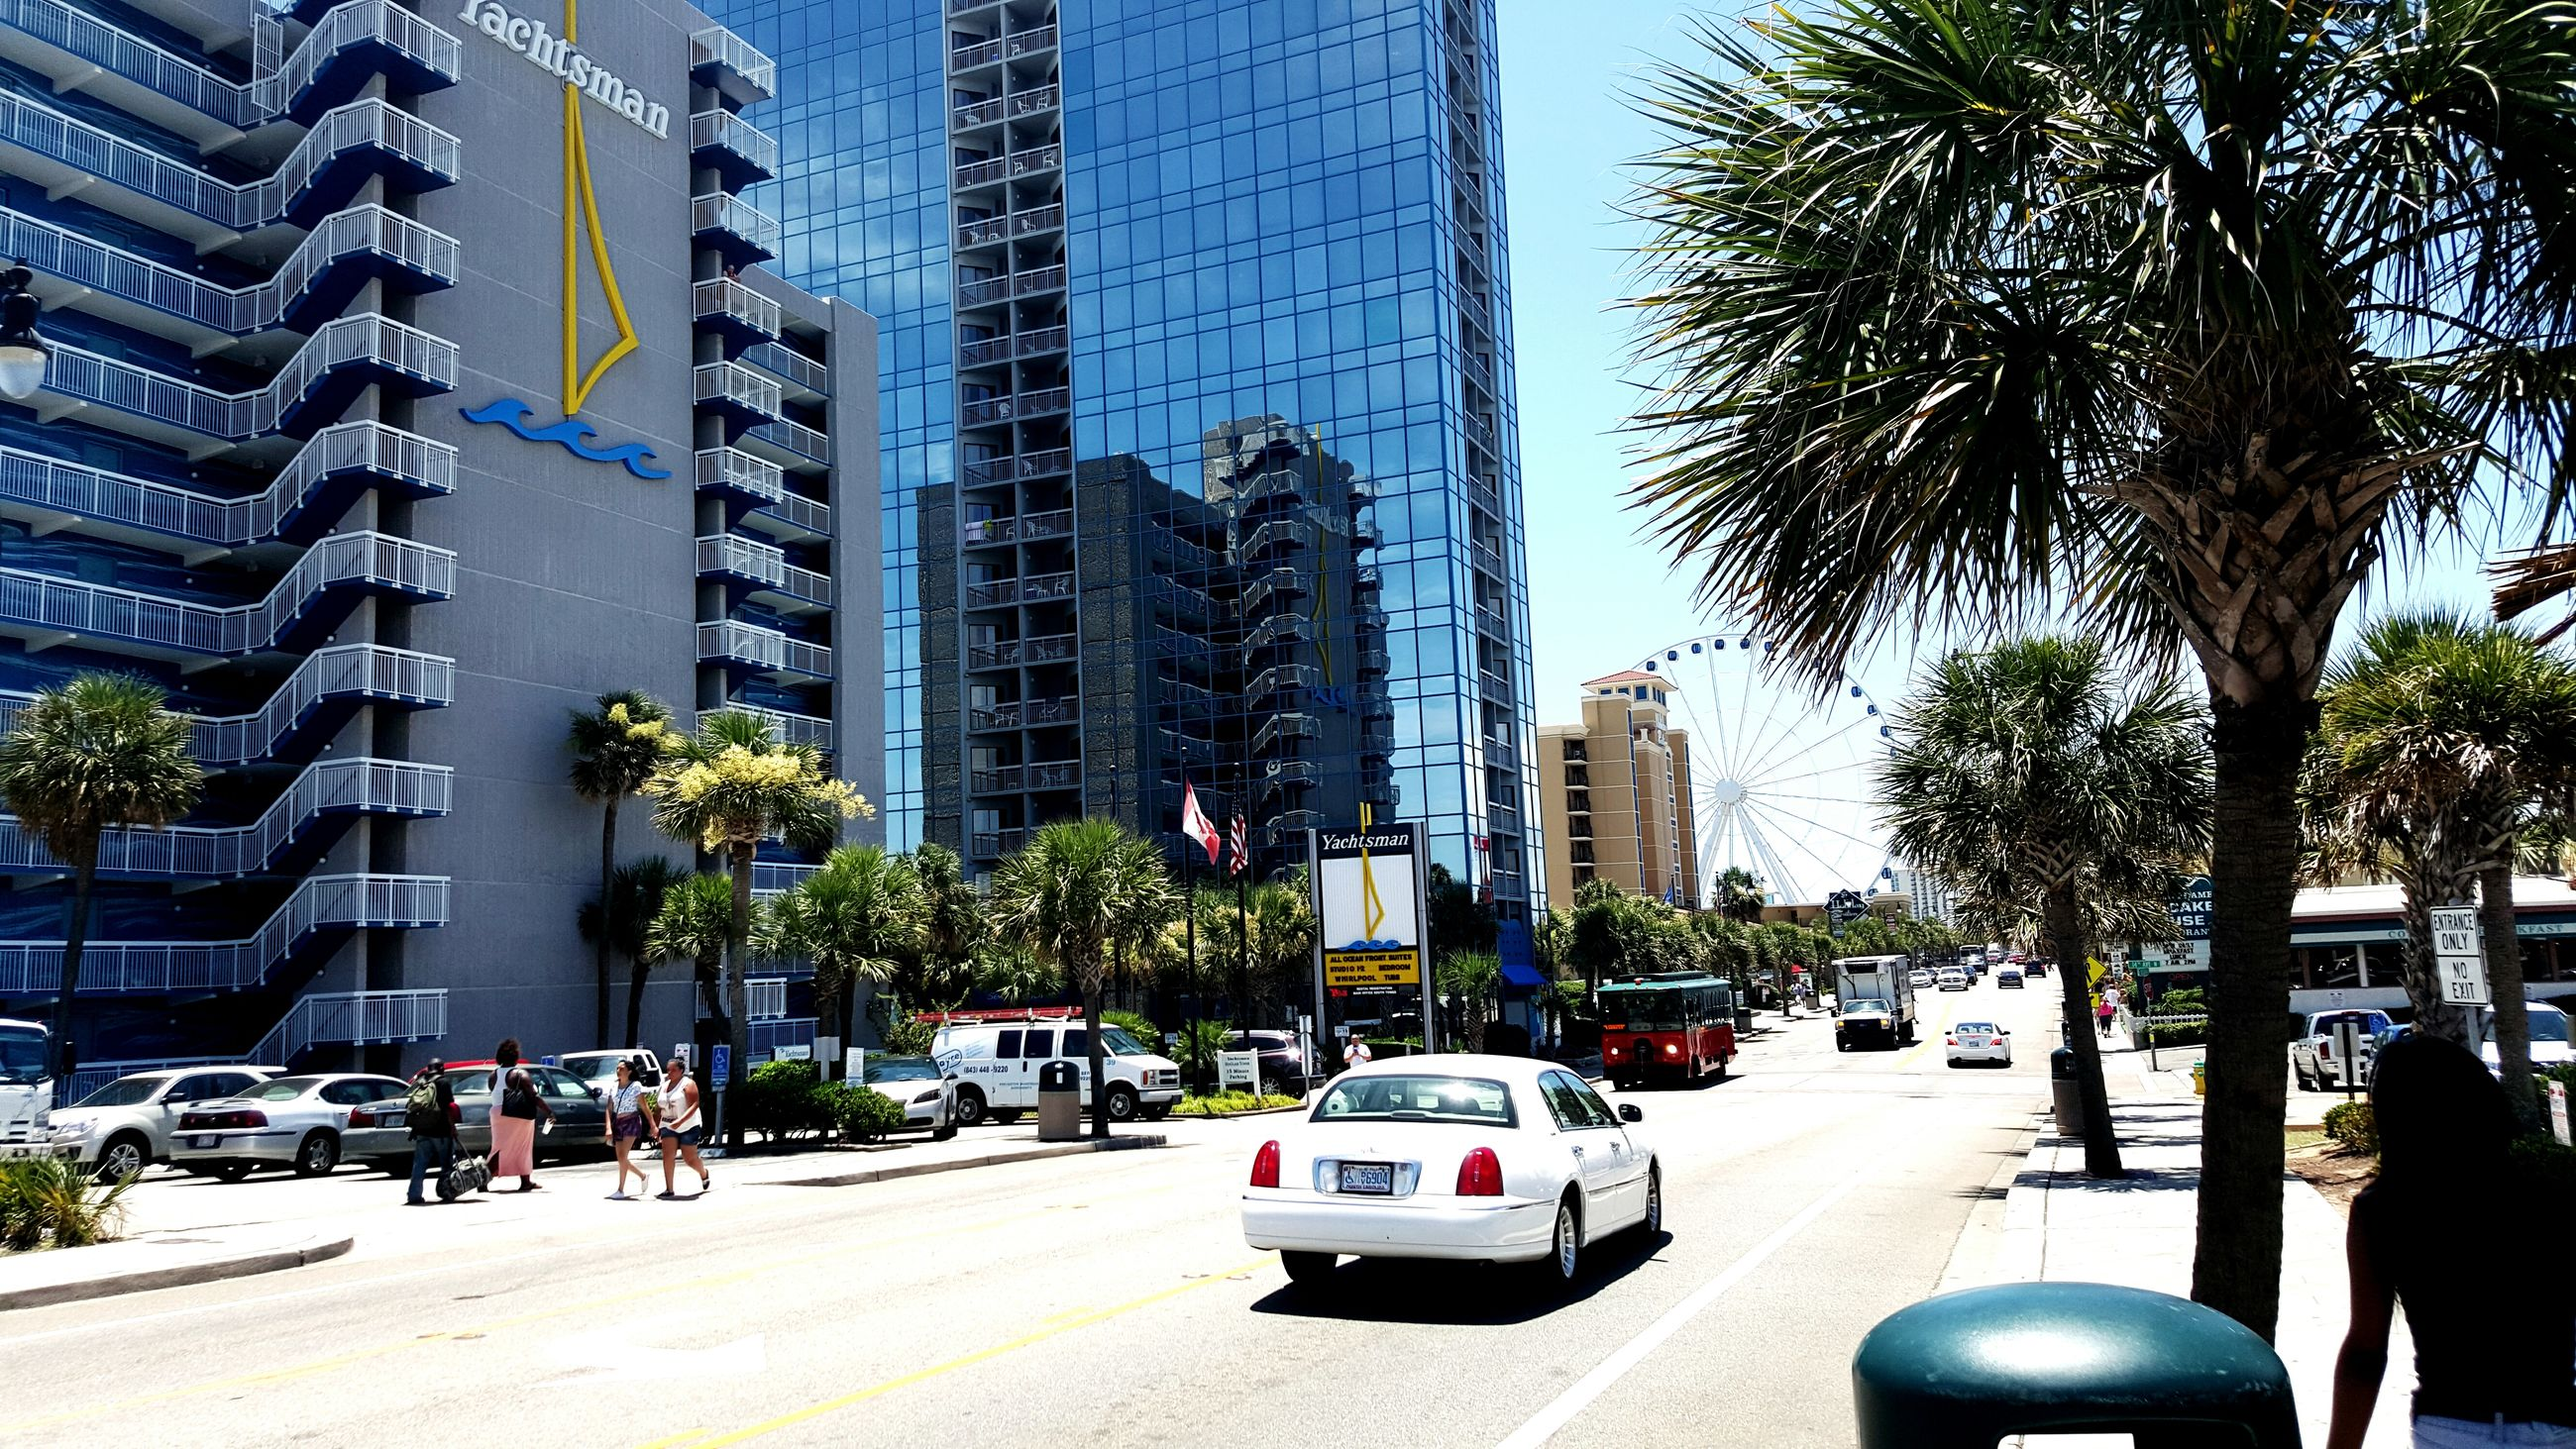 building exterior, architecture, built structure, city, tree, car, street, city life, land vehicle, transportation, sunlight, incidental people, building, mode of transport, day, shadow, sky, outdoors, clear sky, residential building